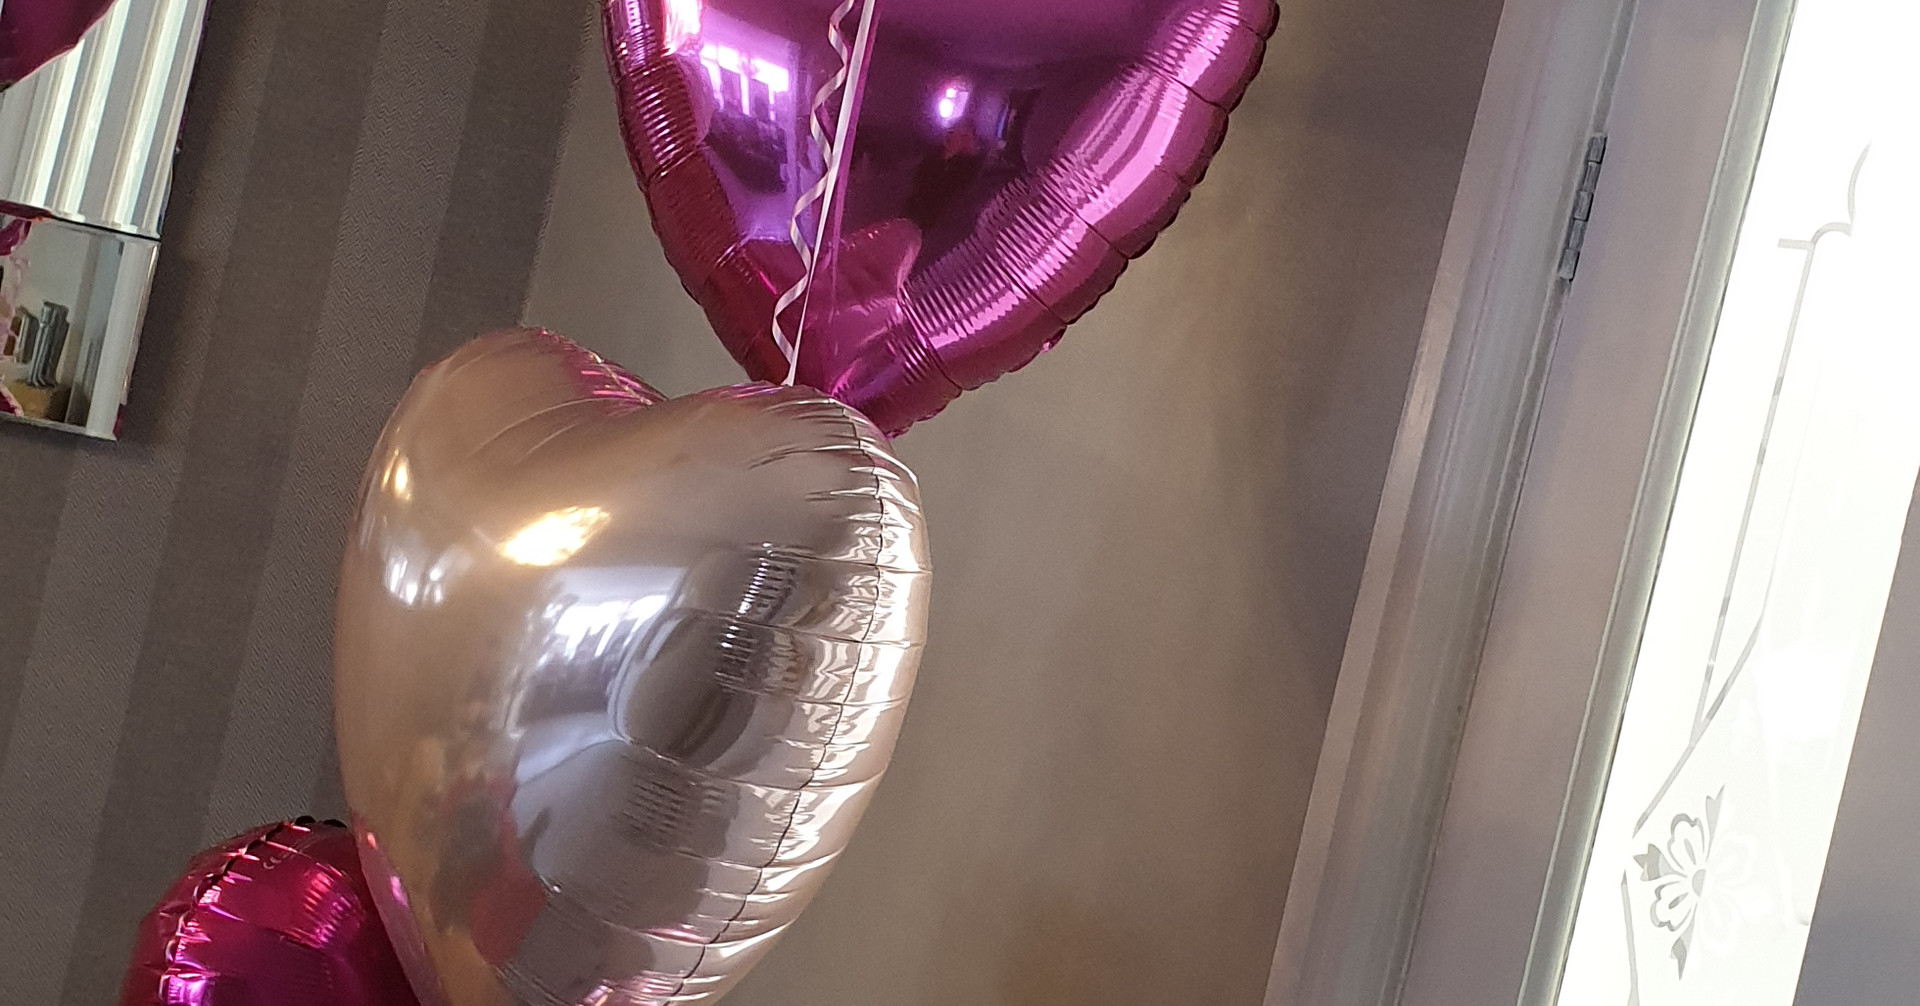 16th topped cluster of 5 balloons